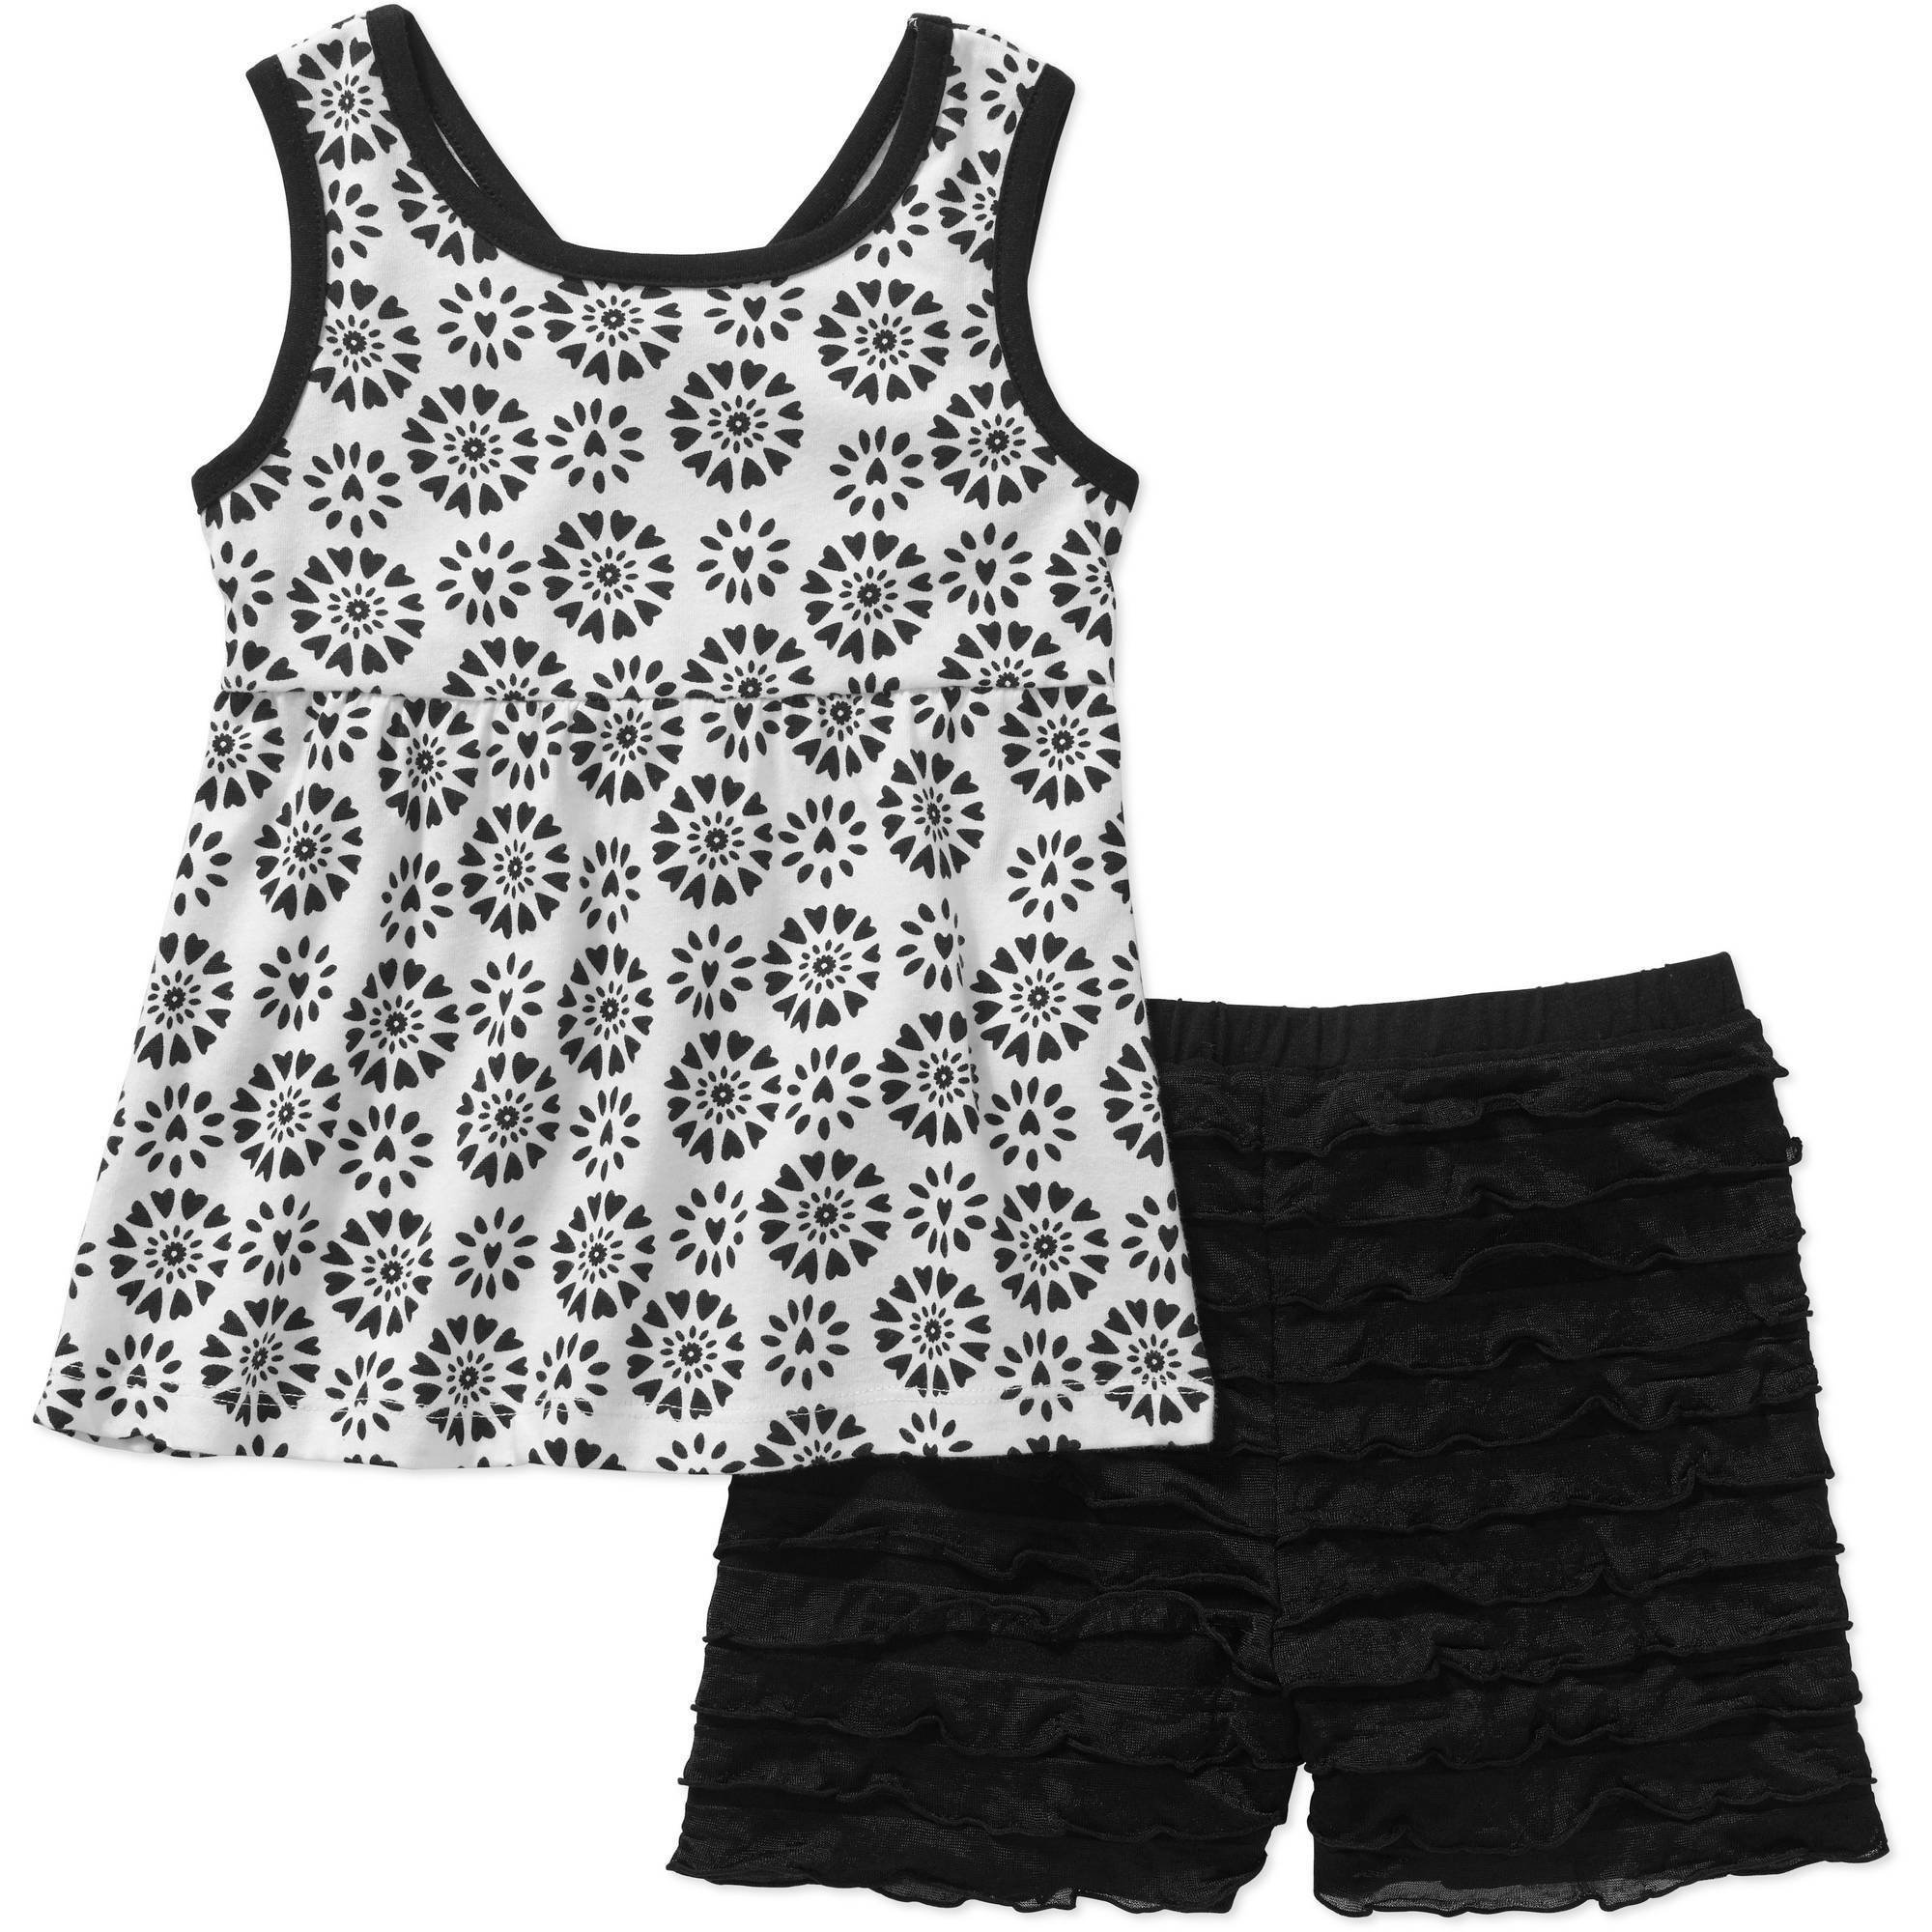 Healthtex Baby Toddler Girl Fashion Tank & Shorts 2 Pc Outfit Set